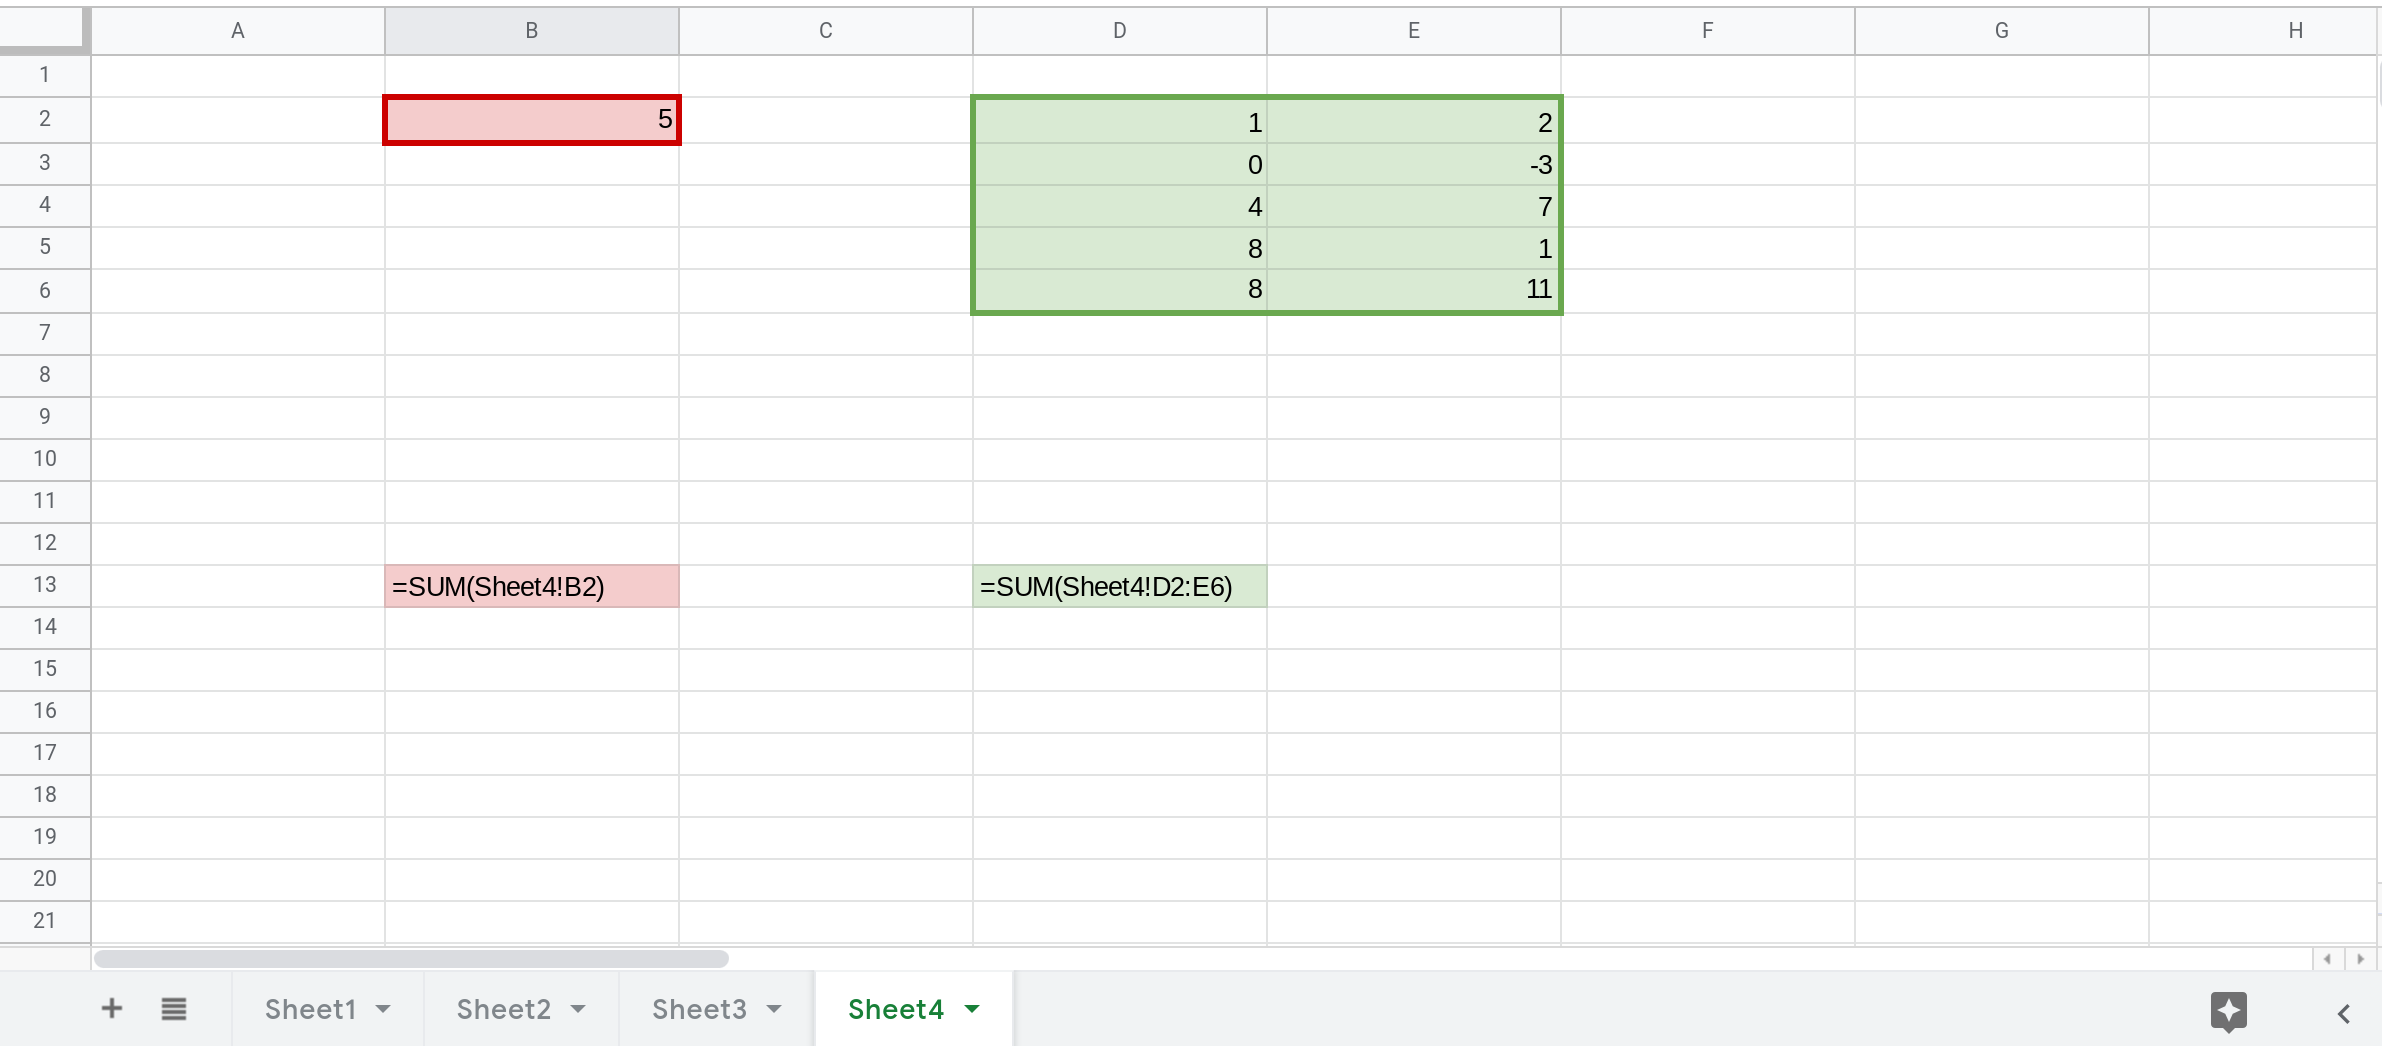 Screenshot of a Google Sheets spreadsheet showing two ranges highlighted in Sheet4: B2 and D2:E6.